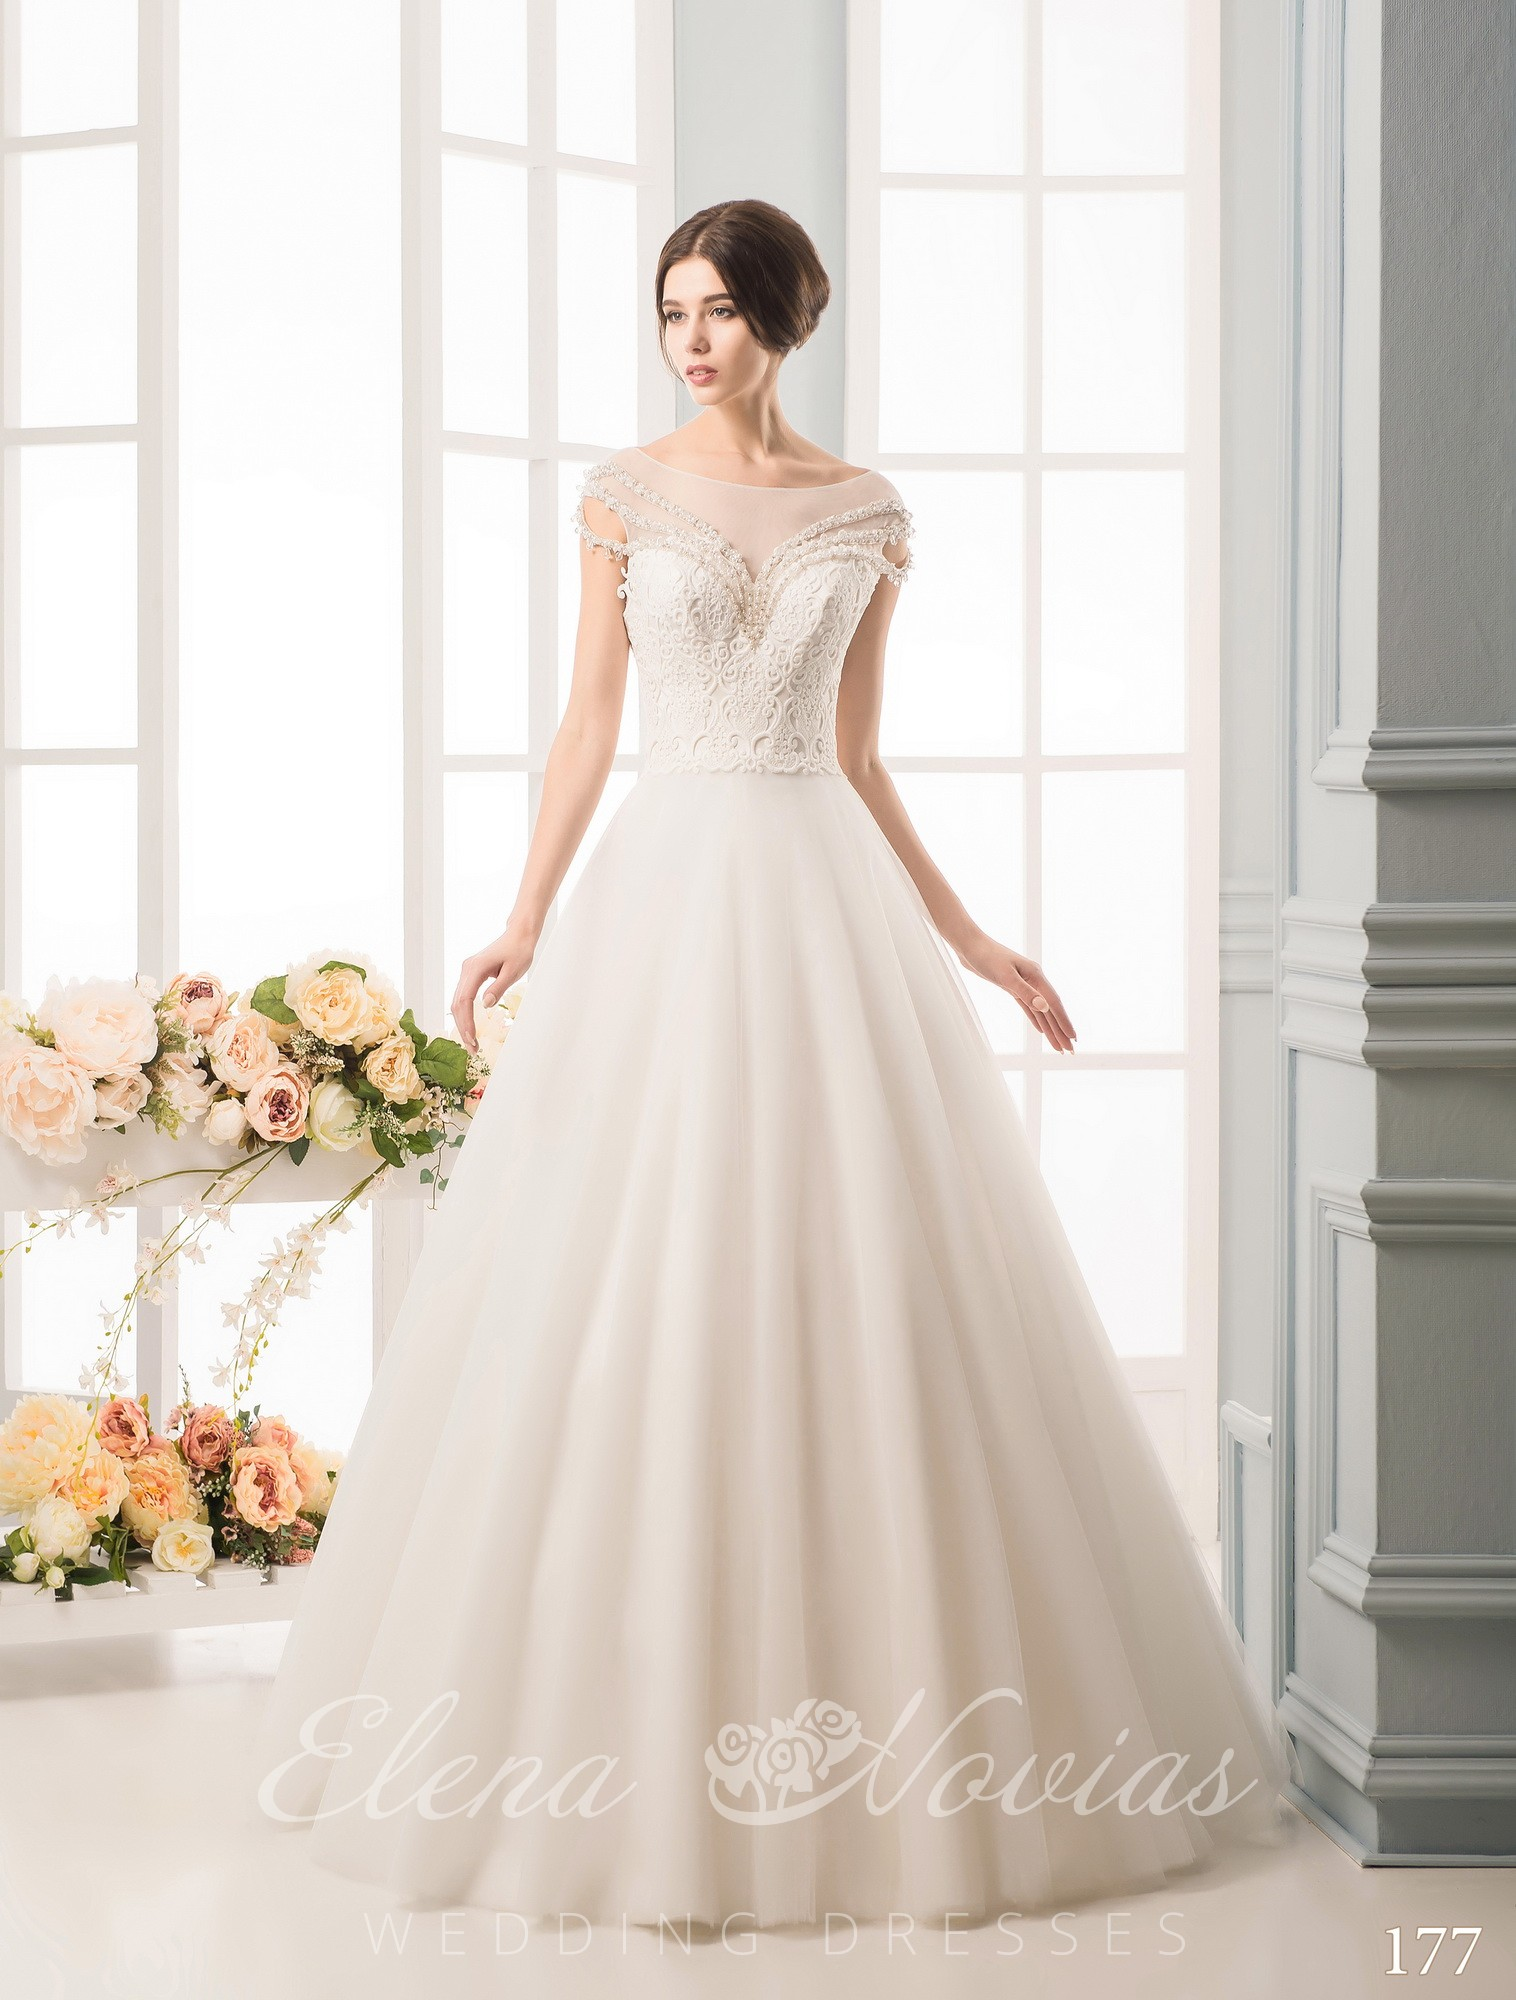 Wedding dress wholesale 177